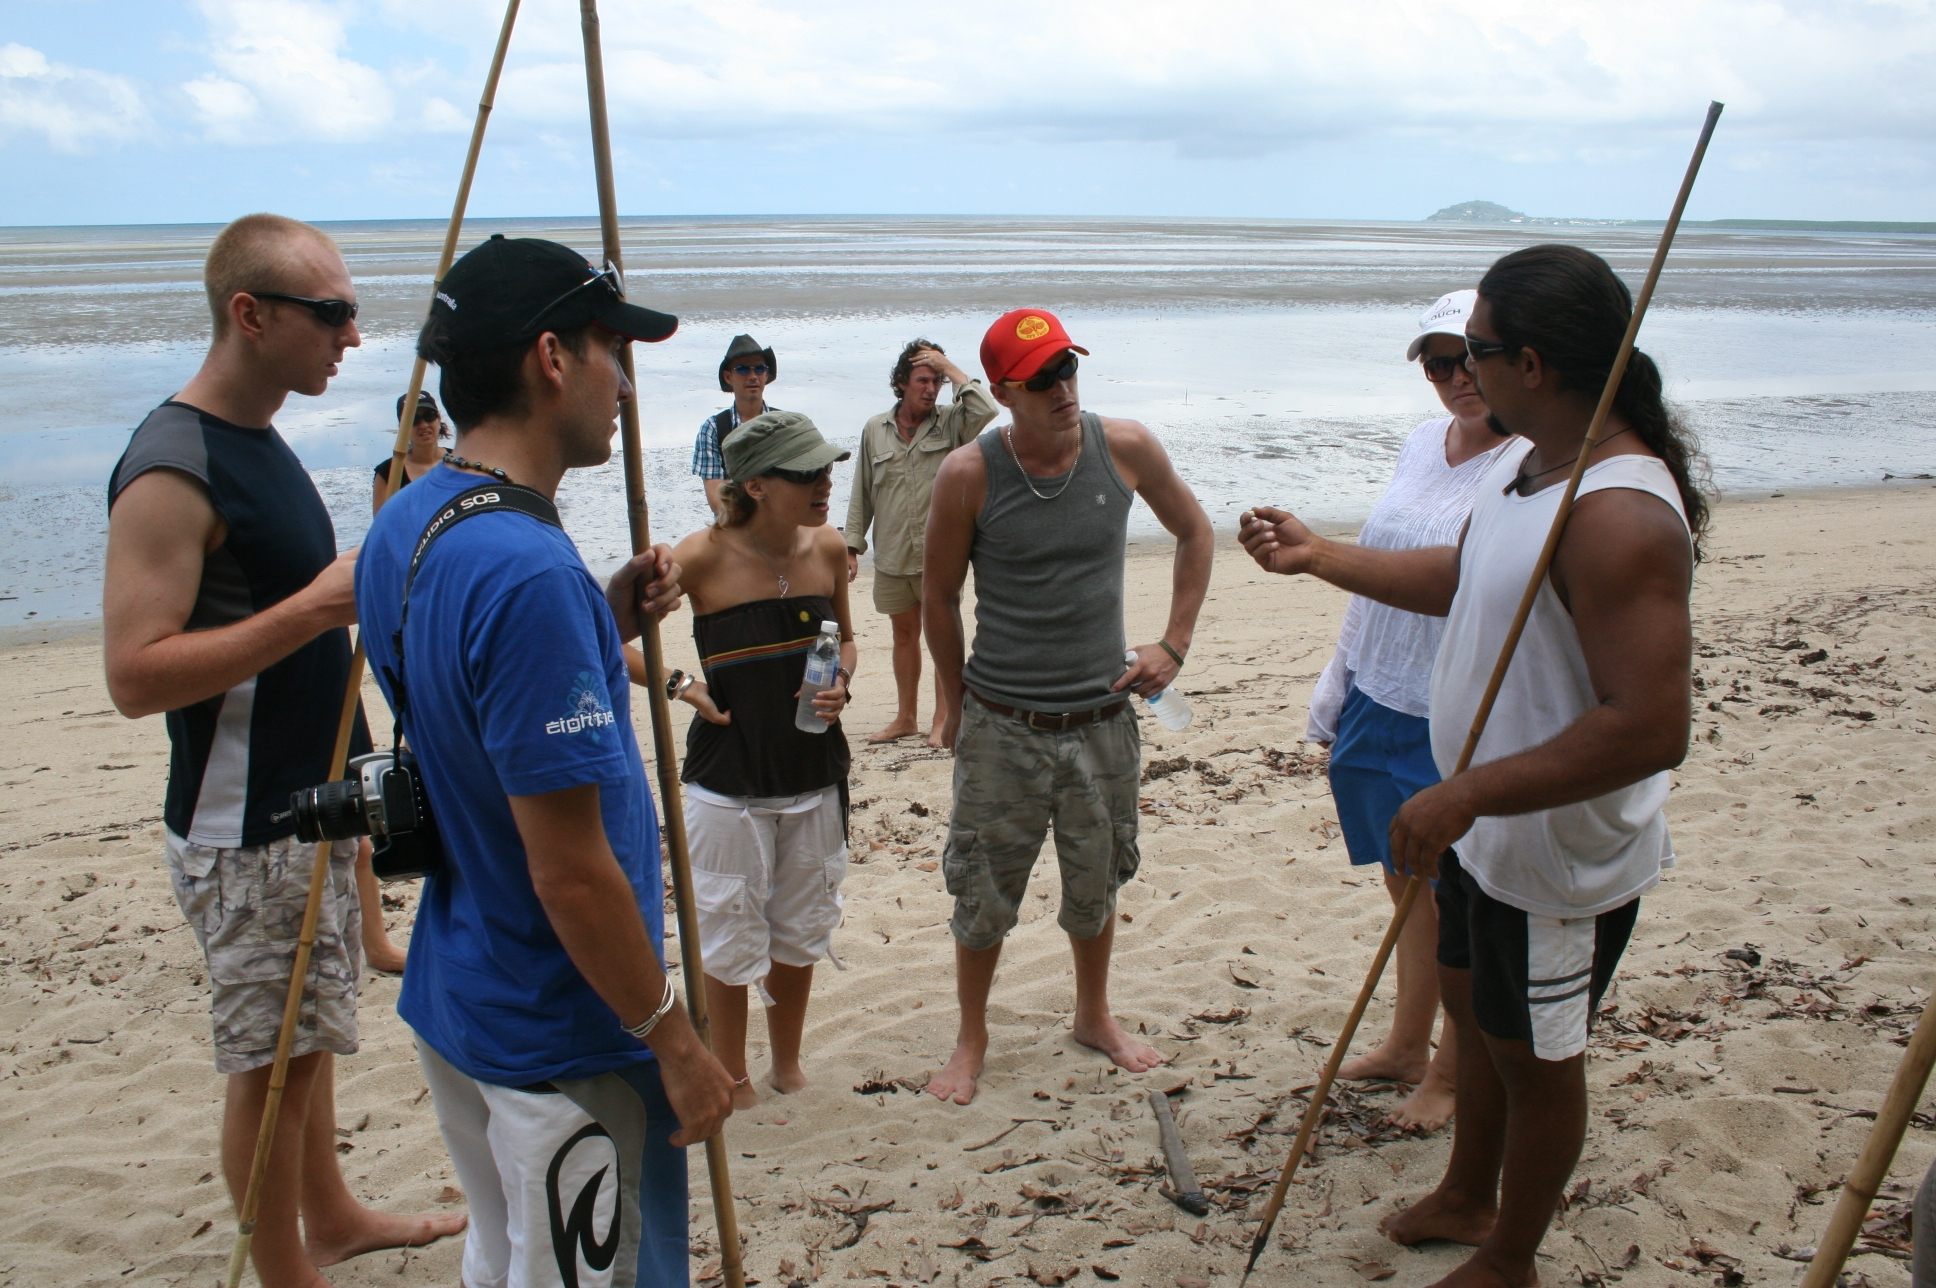 2 Day Reef, Daintree Rainforest & Culture tour – Quicksilver Agincourt Outer Reef